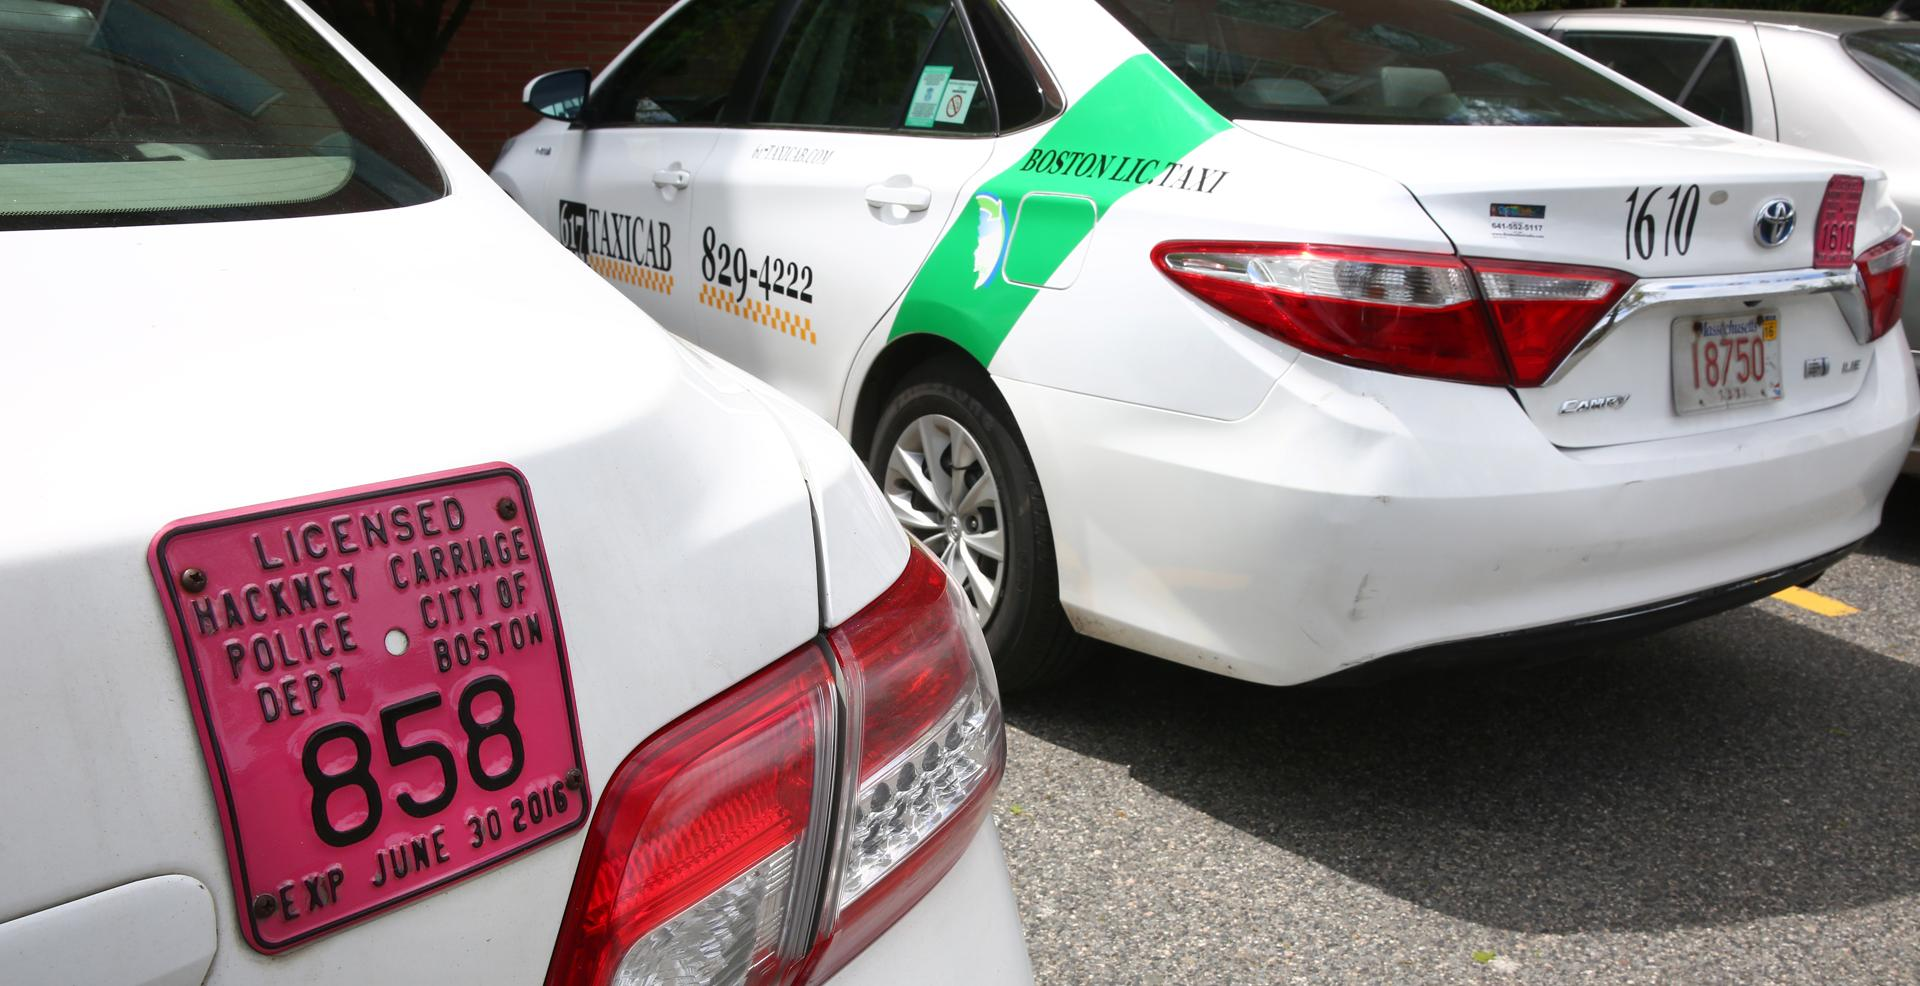 Banks are more frequently taking taxi medallion owners to court when their loans go into default.